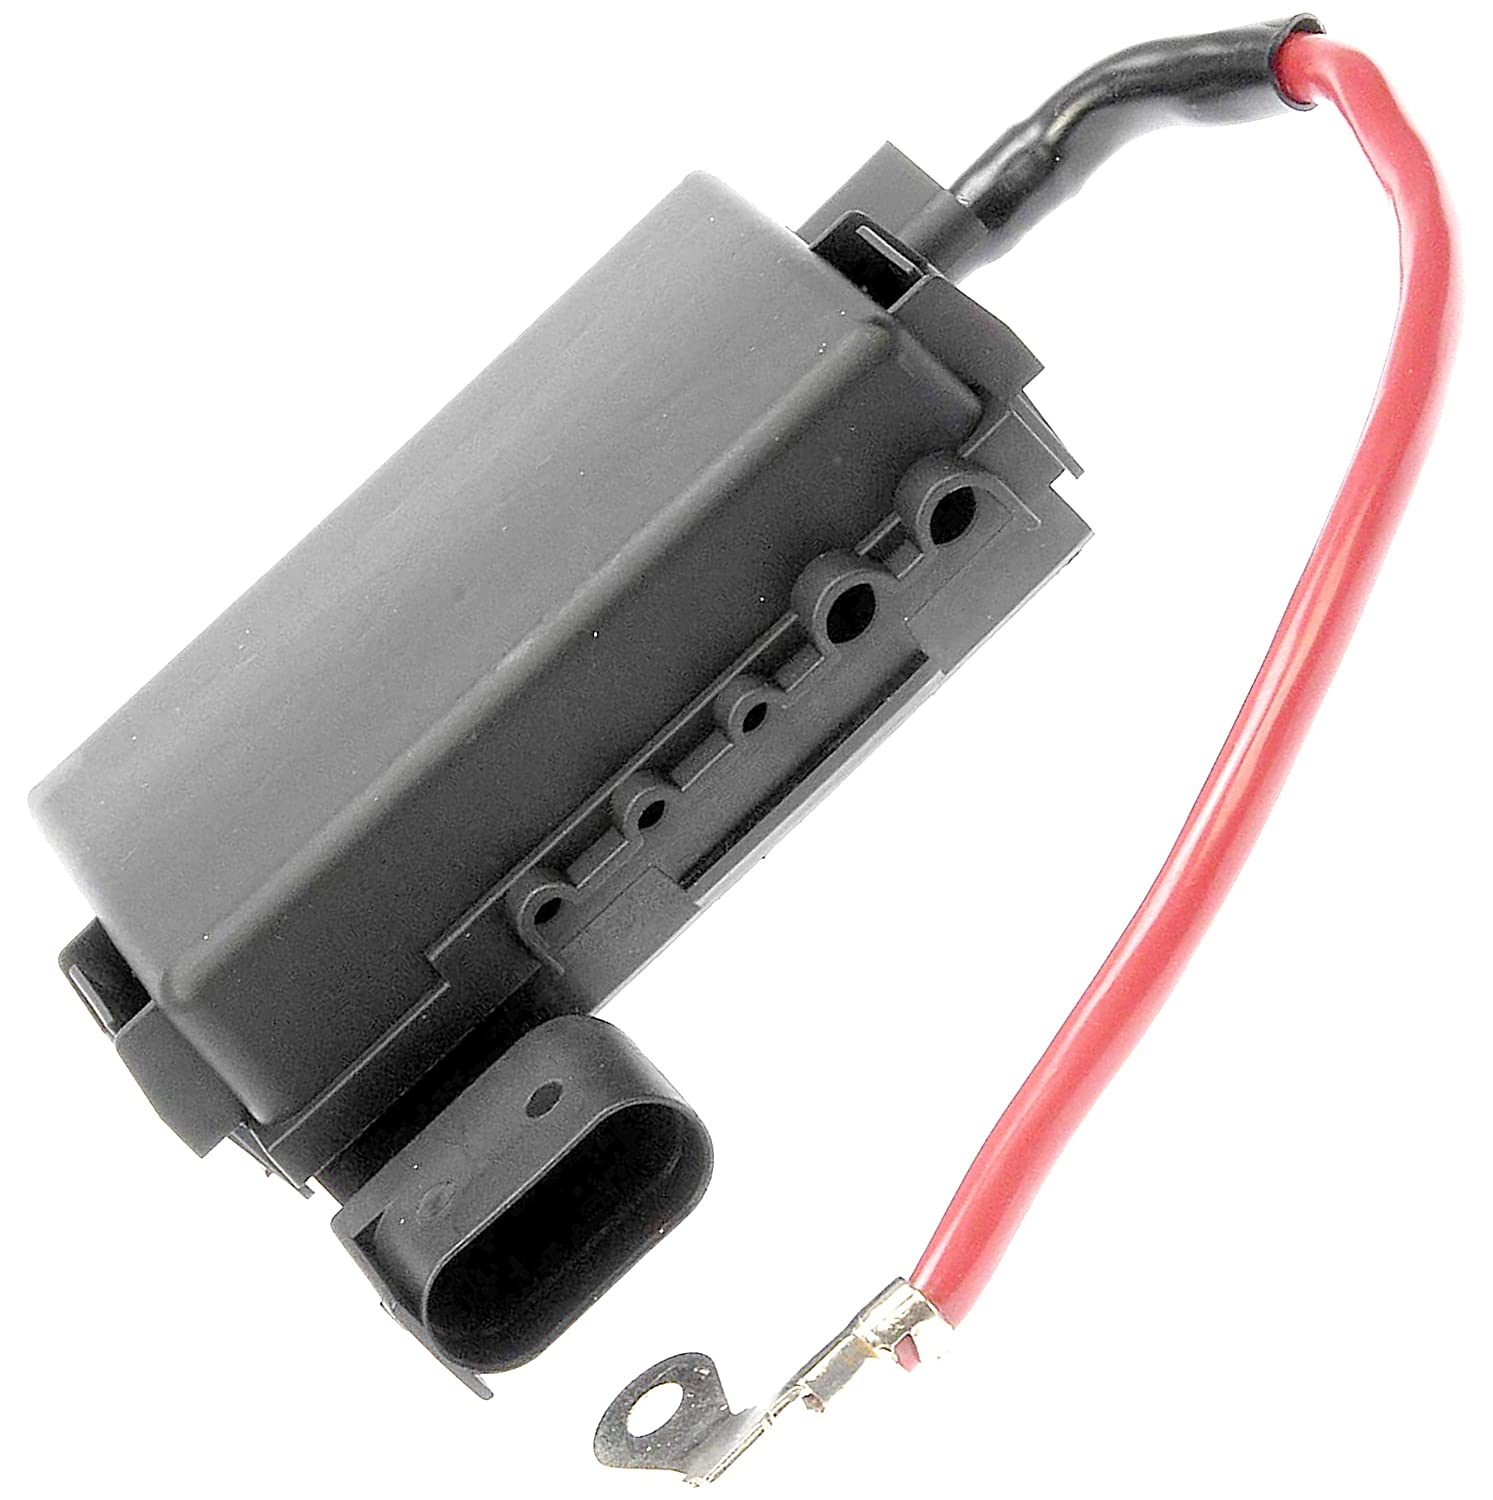 Apdty 035792 Fuse Box Assembly Battery Mounted With New 2001 Volkswagen Beetle Fuses Fusible Links Fits 1998 2003 Vw Models Up To Vin 1c3440500